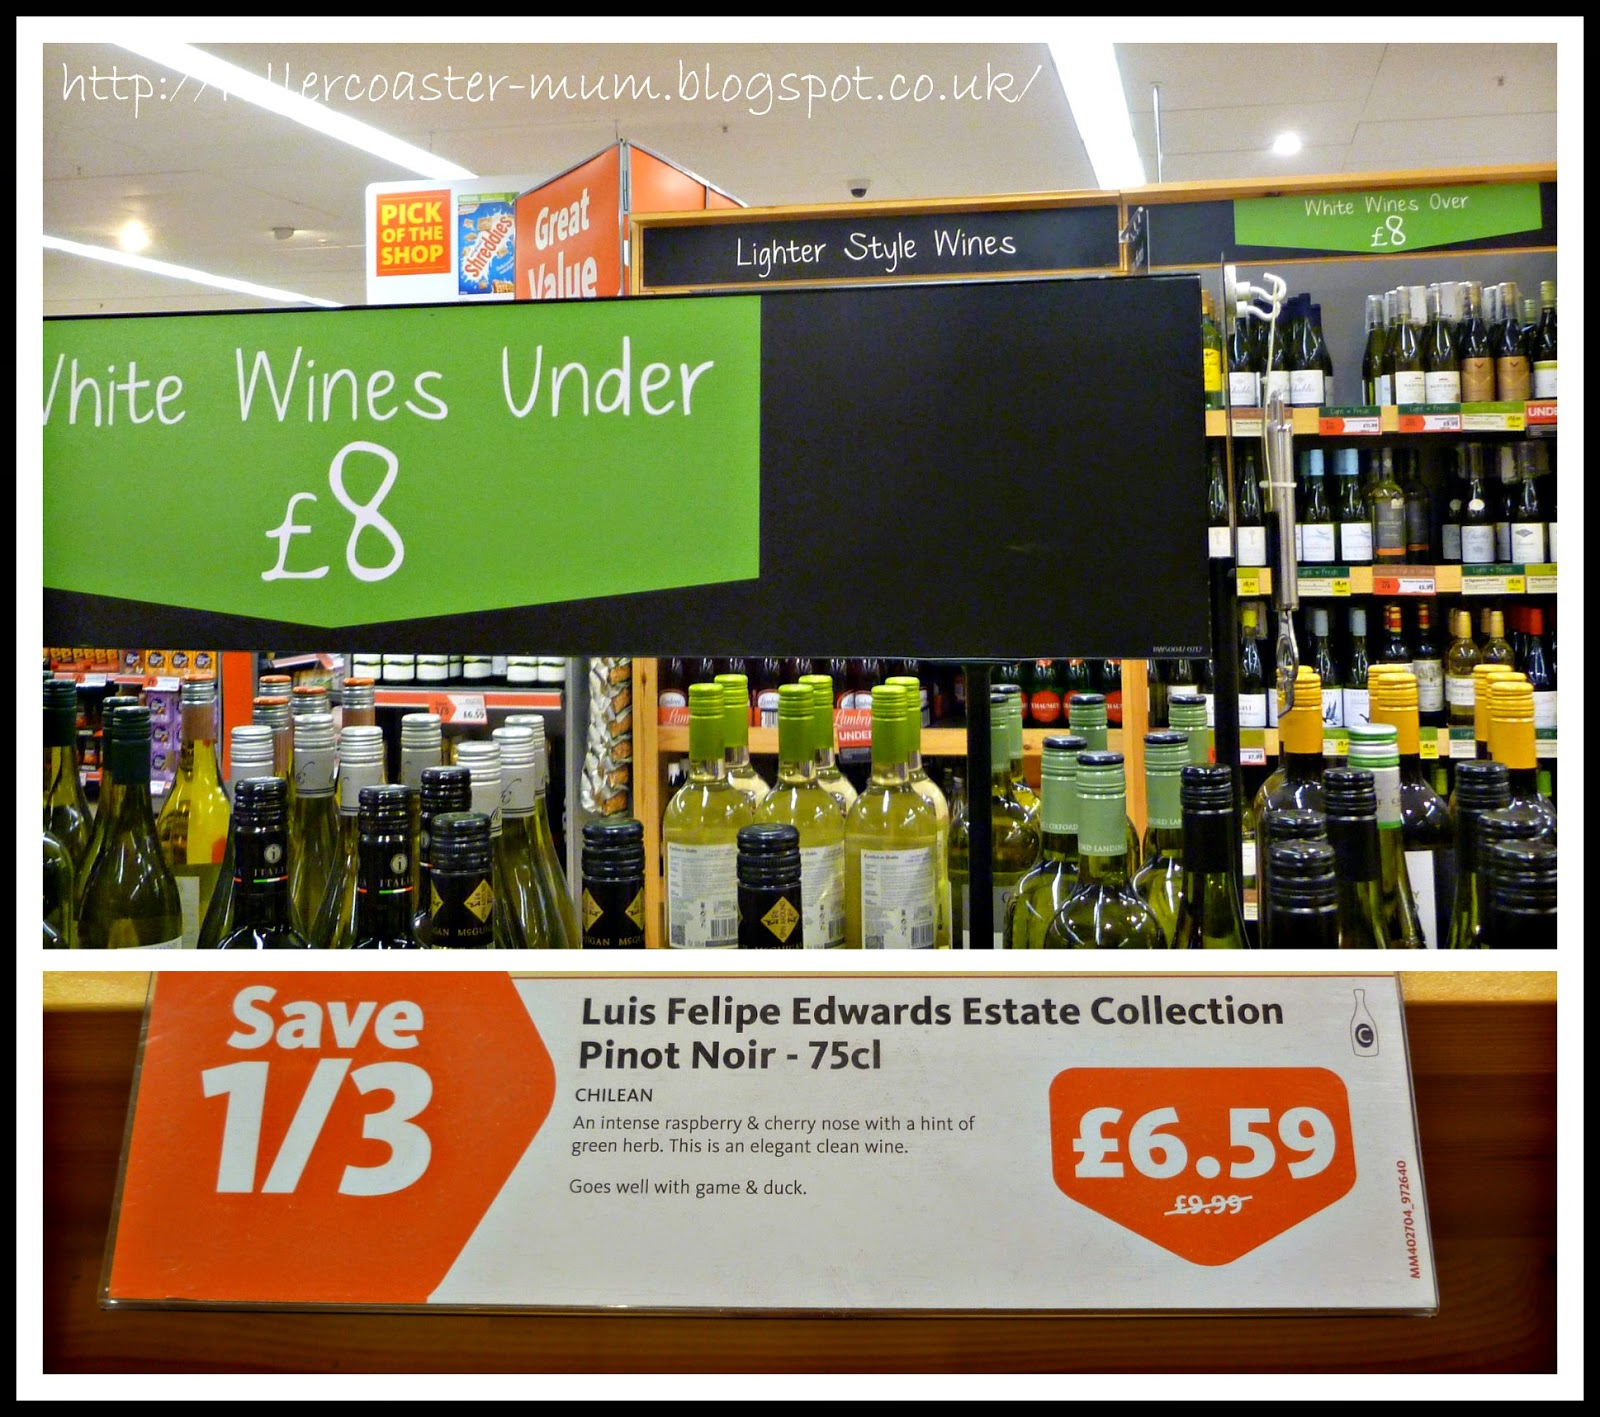 #MorrisonsMum essentials - the wine aisle